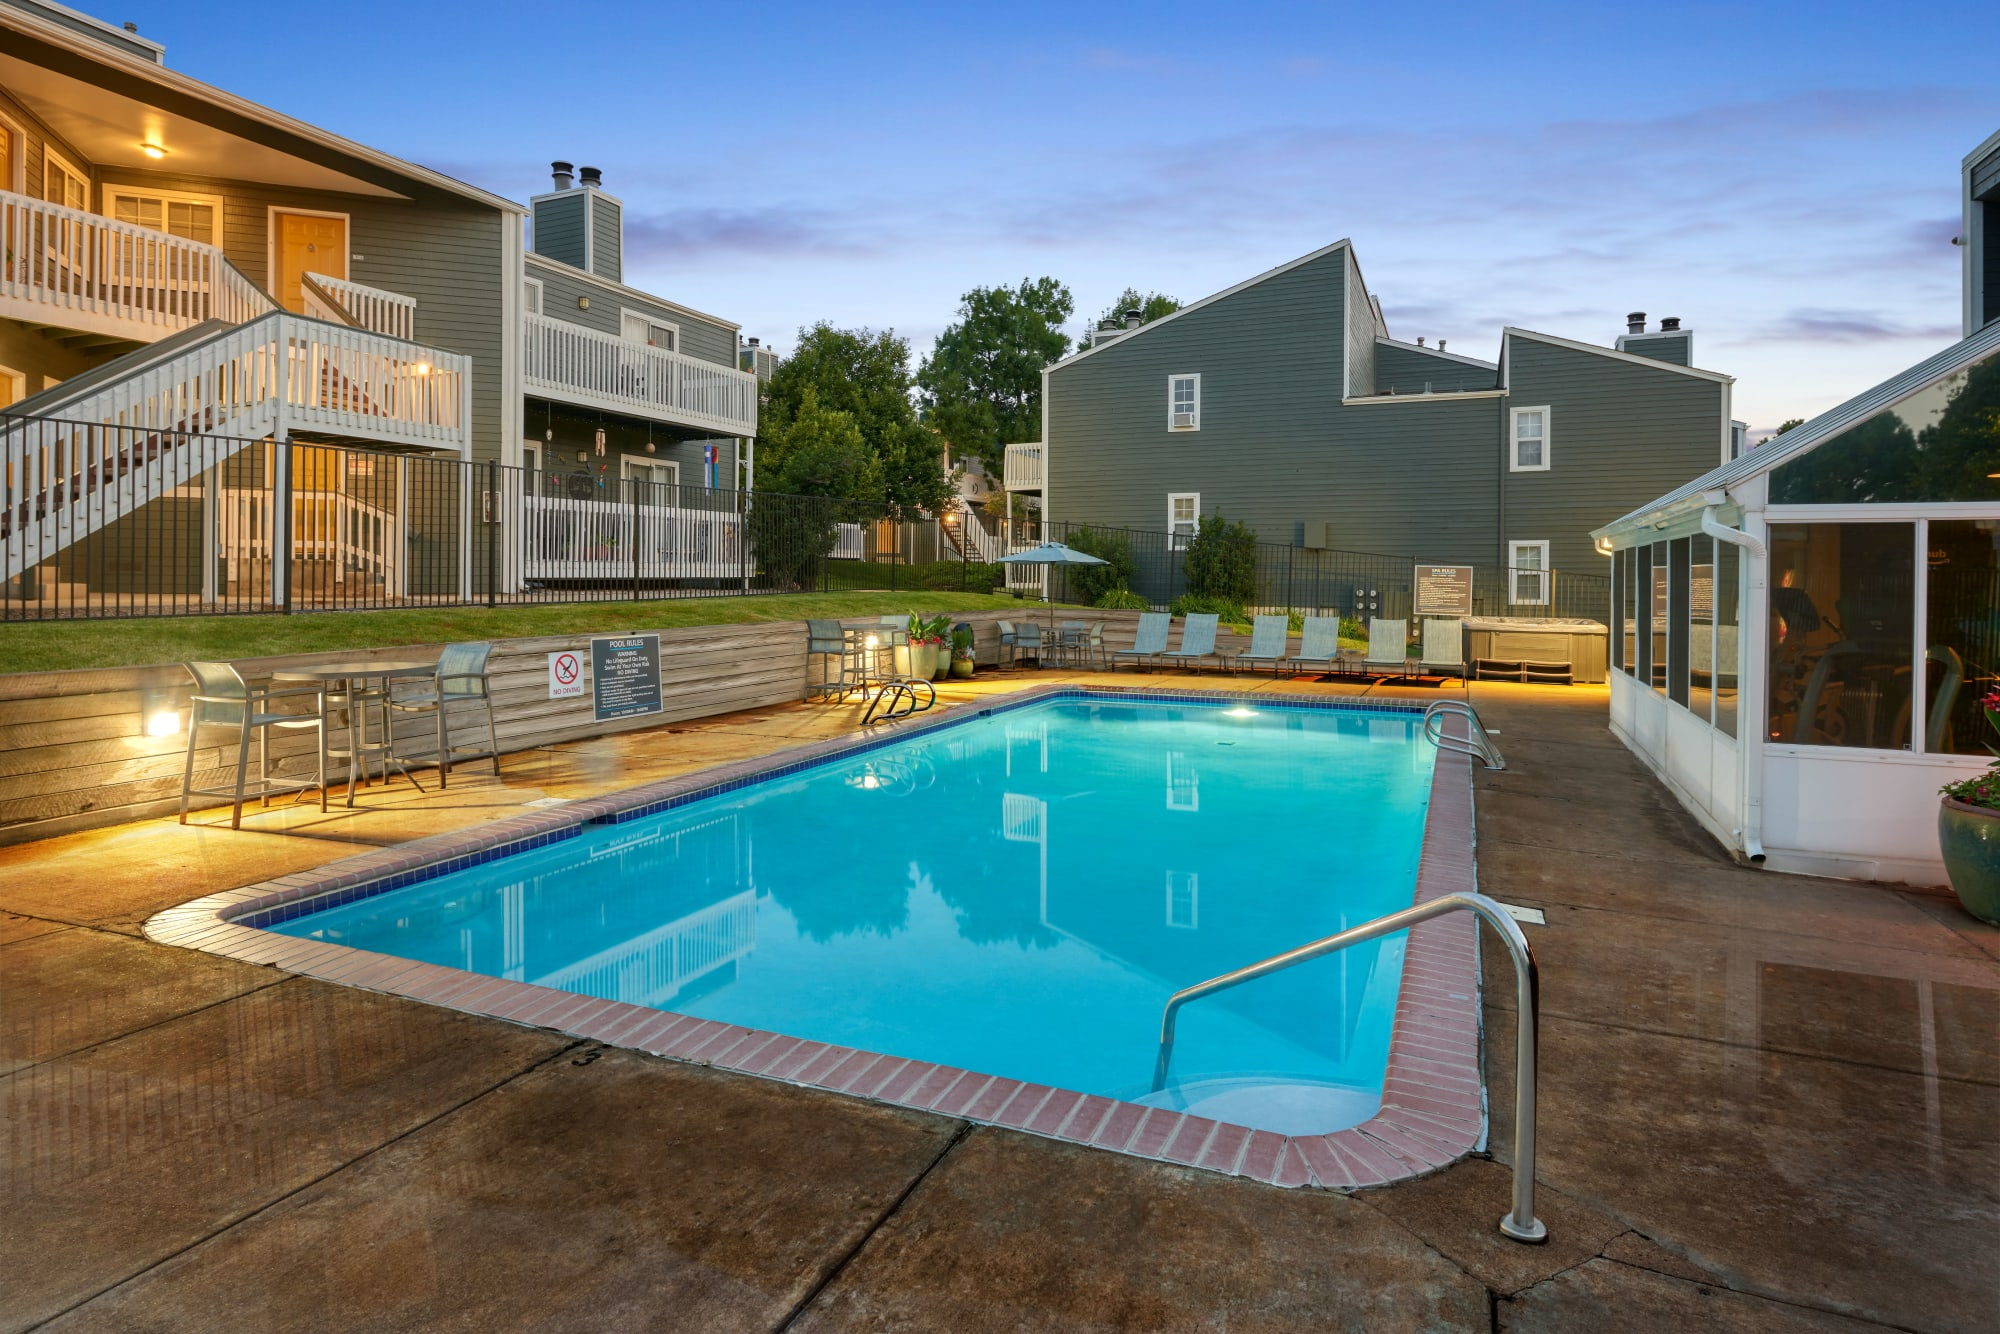 Relaxing lounge chairs by the pool at Bluesky Landing Apartments in Lakewood, Colorado